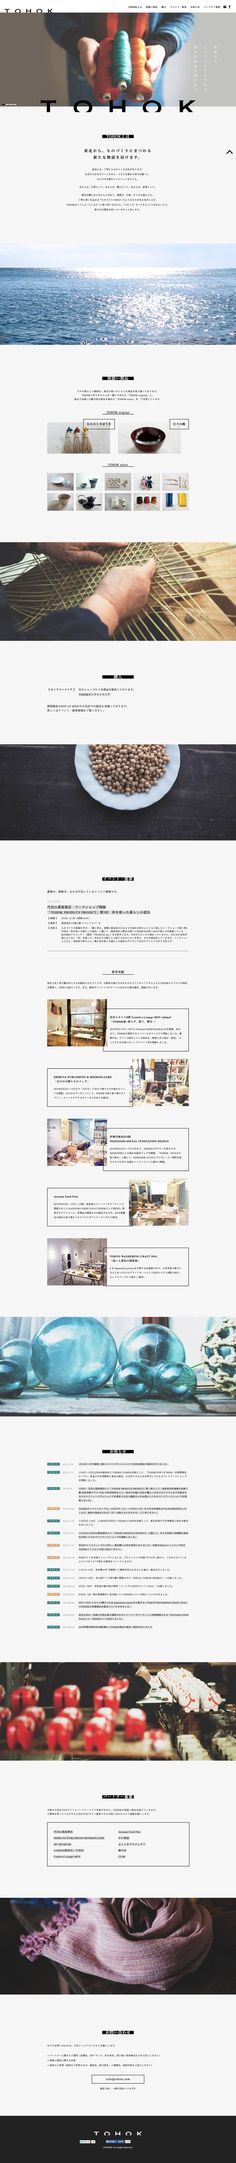 web webdesign design layout grid Uploaded by